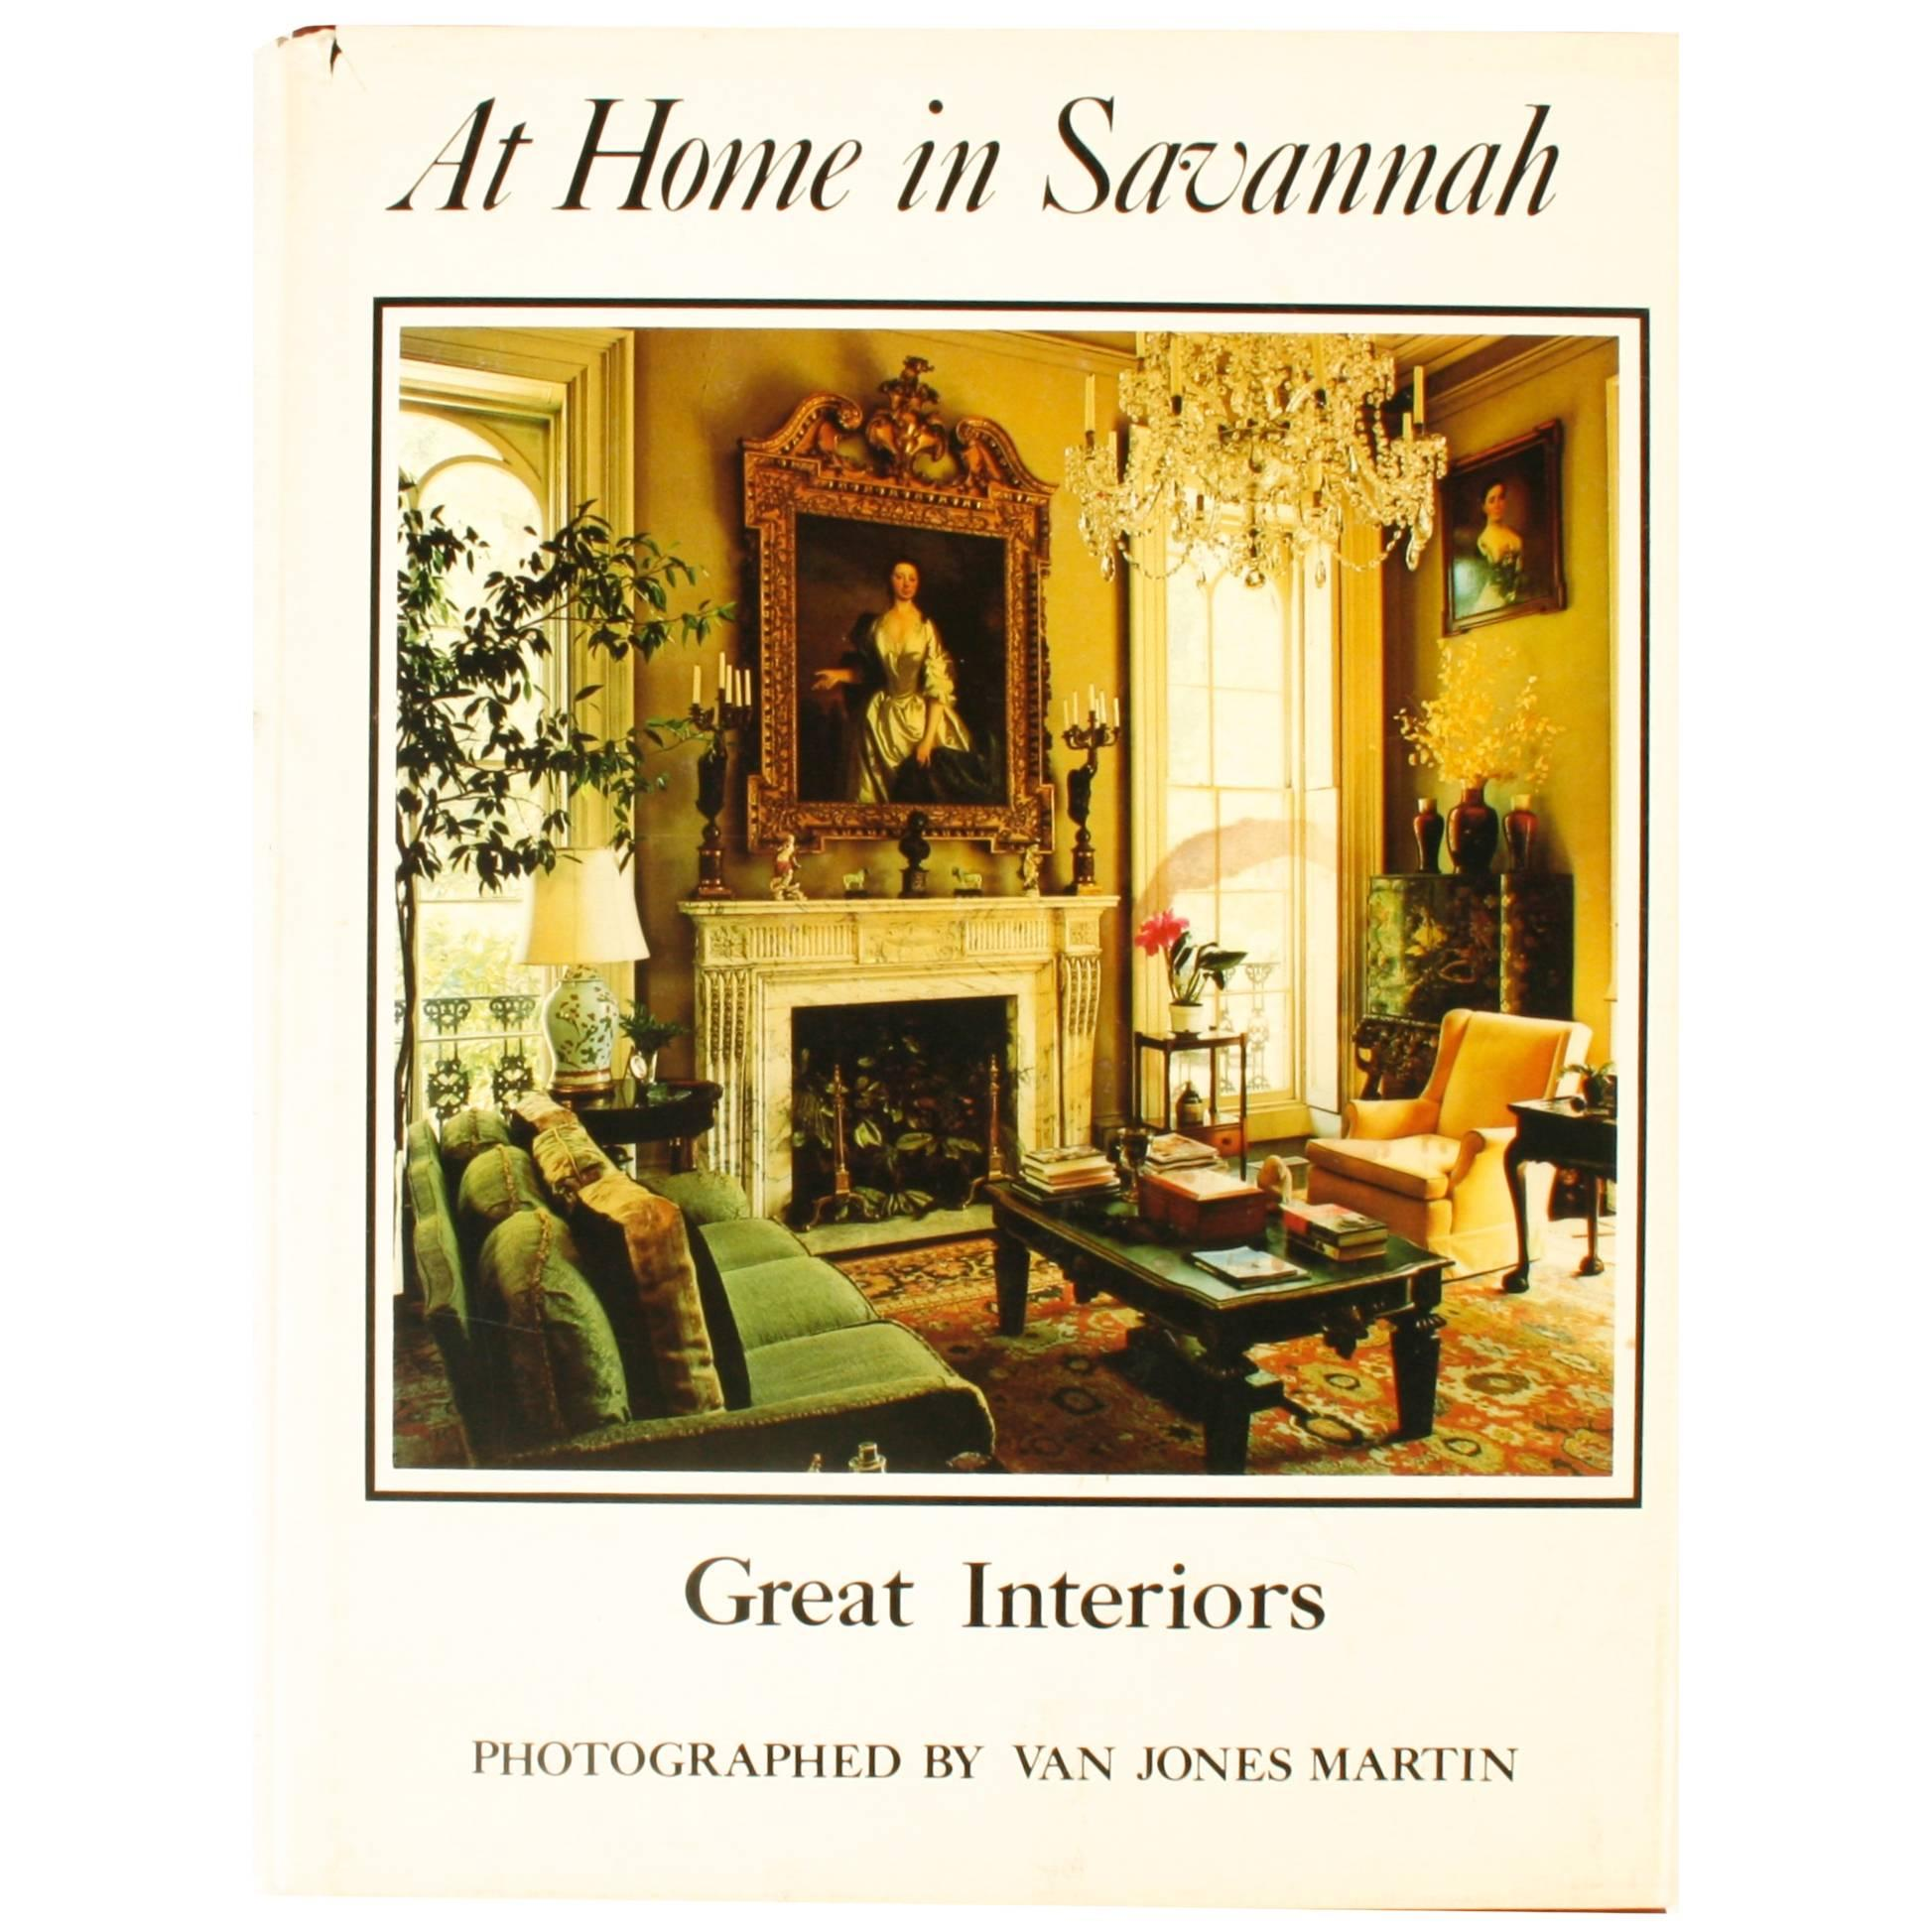 At Home in Savannah, Great Interiors, First Edition